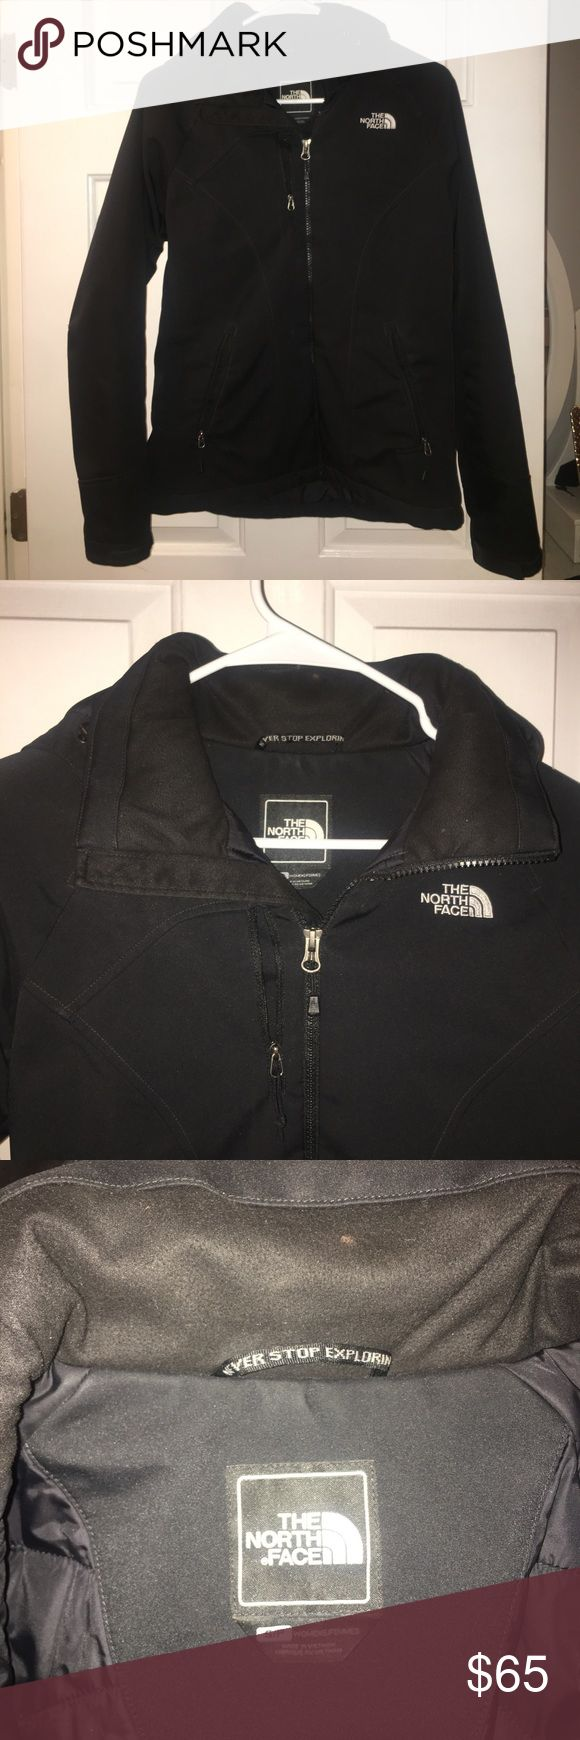 """Women's Insulted North Face Jacket Perfect every day jacket in the winter. Not too heavy but very warm and insulated. Considered The North Face """"soft shell"""" line so also water proof. Fits perfectly The North Face Jackets & Coats"""